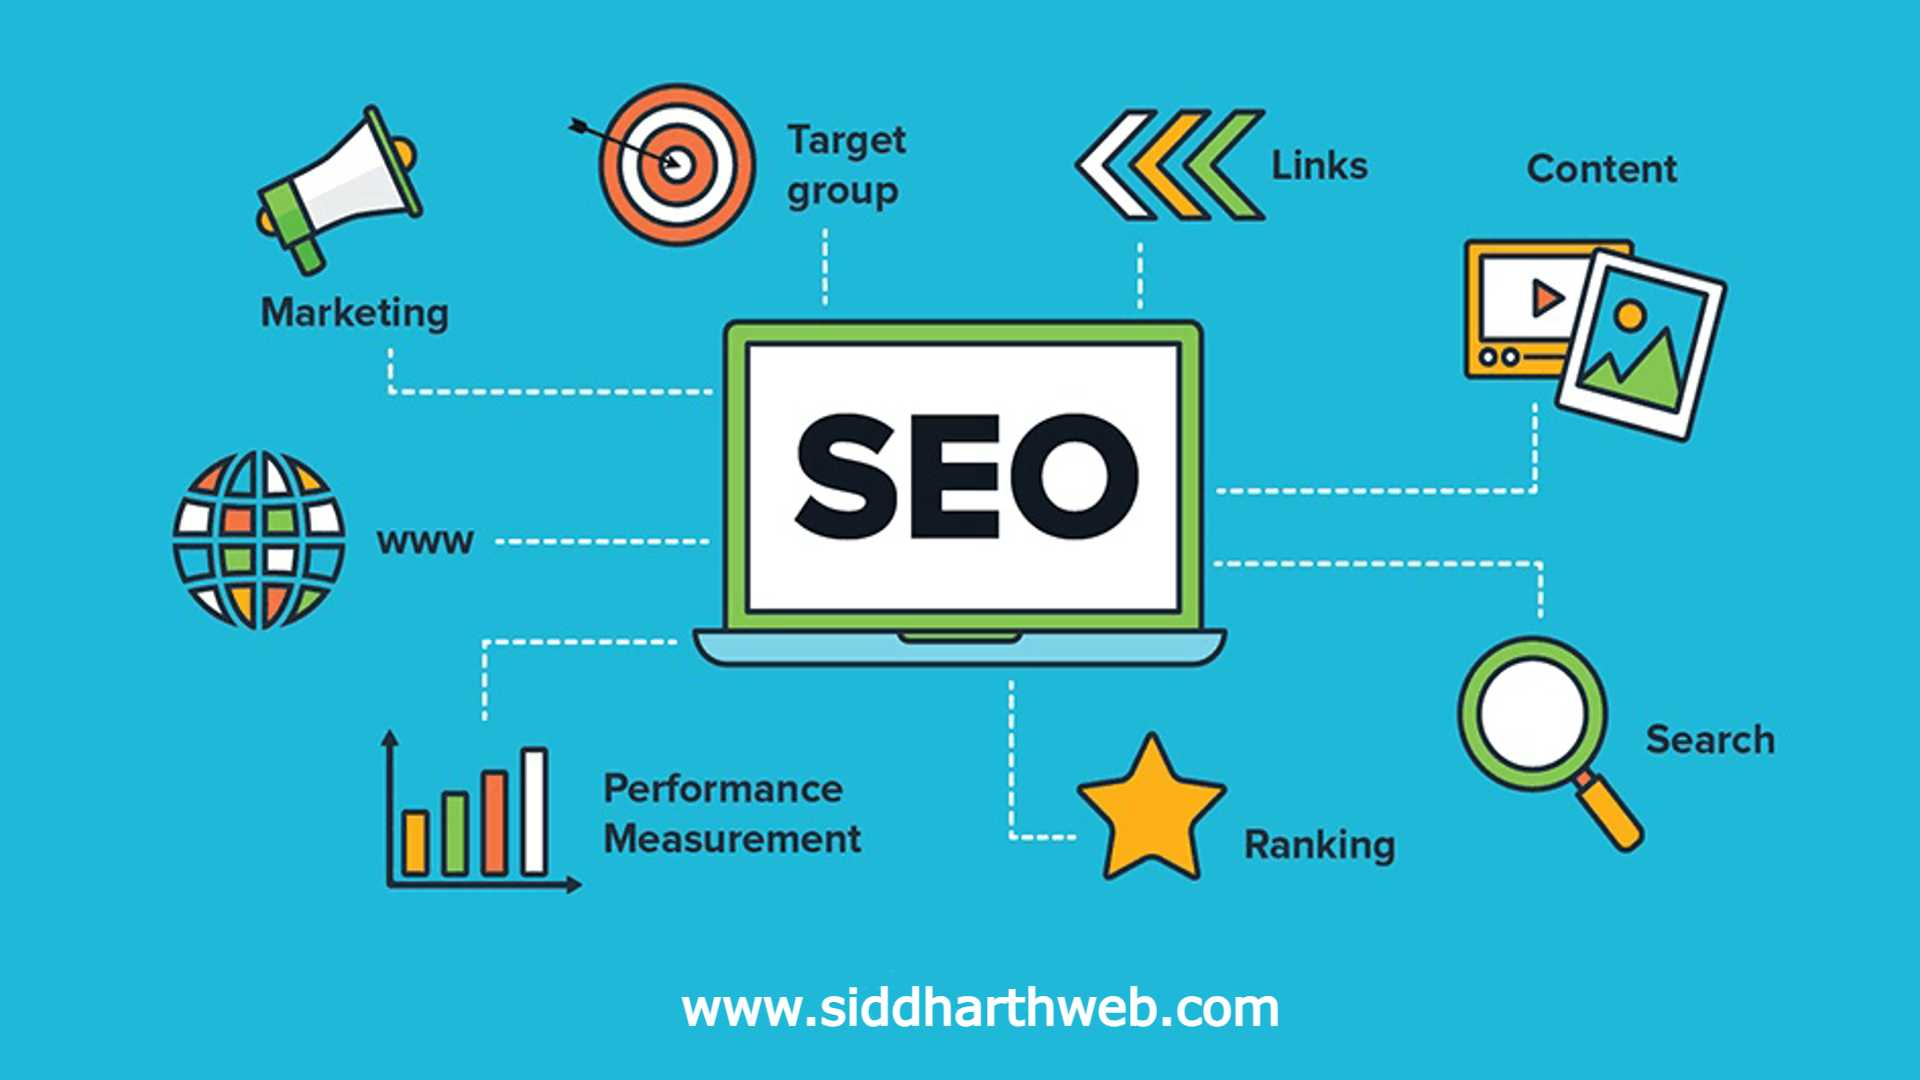 What are the kinds of SEO?